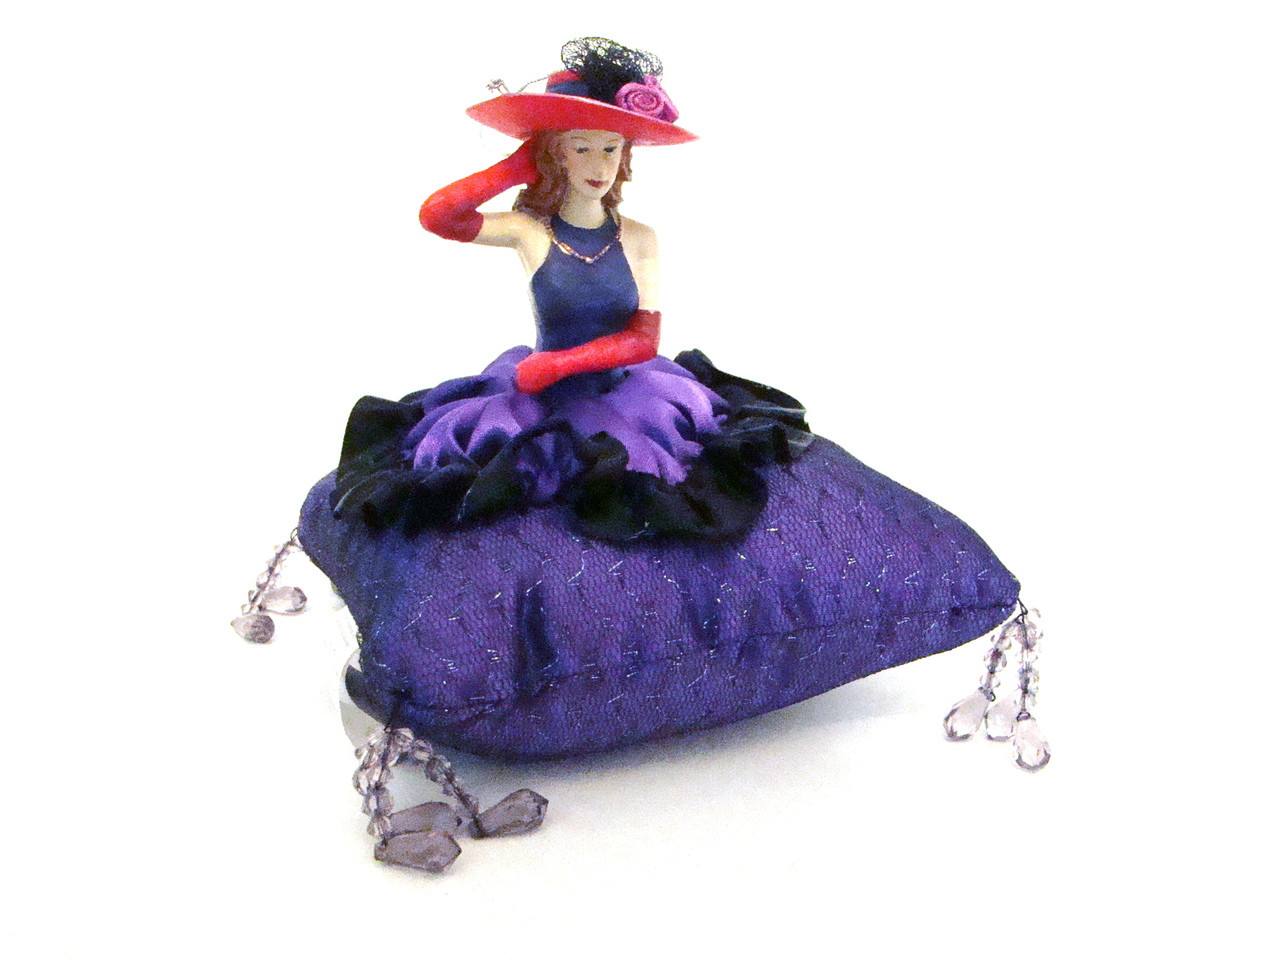 Red Hat Lady Pin Cushion Doll #DI2291